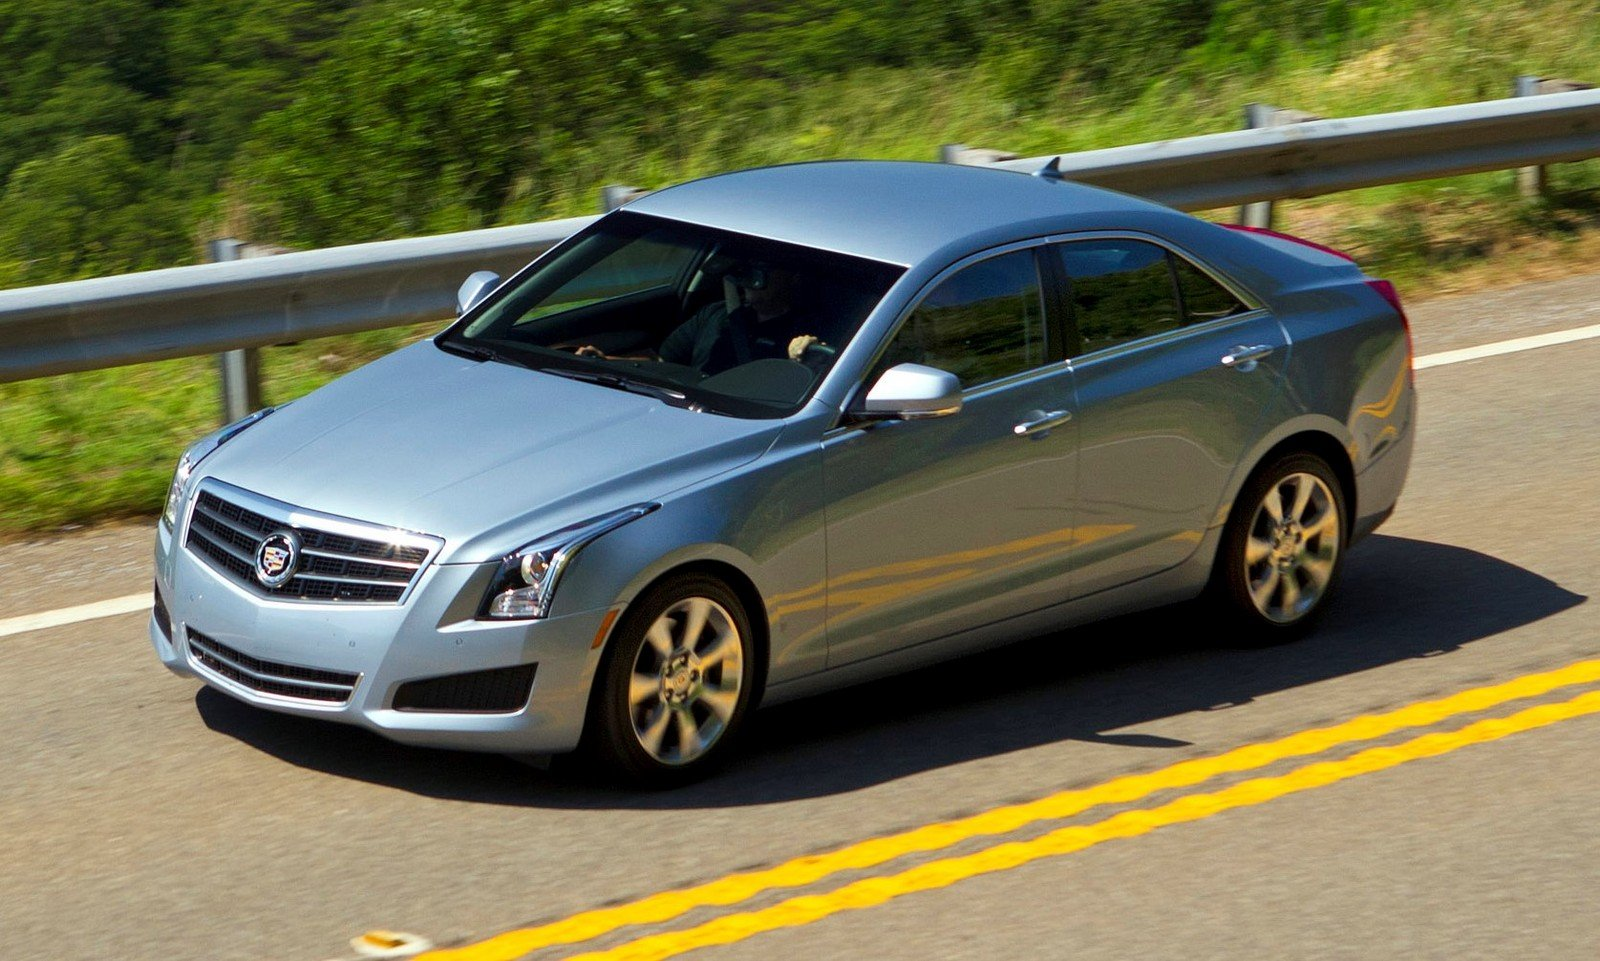 2014 cadillac ats picture 514220 car review top speed. Cars Review. Best American Auto & Cars Review